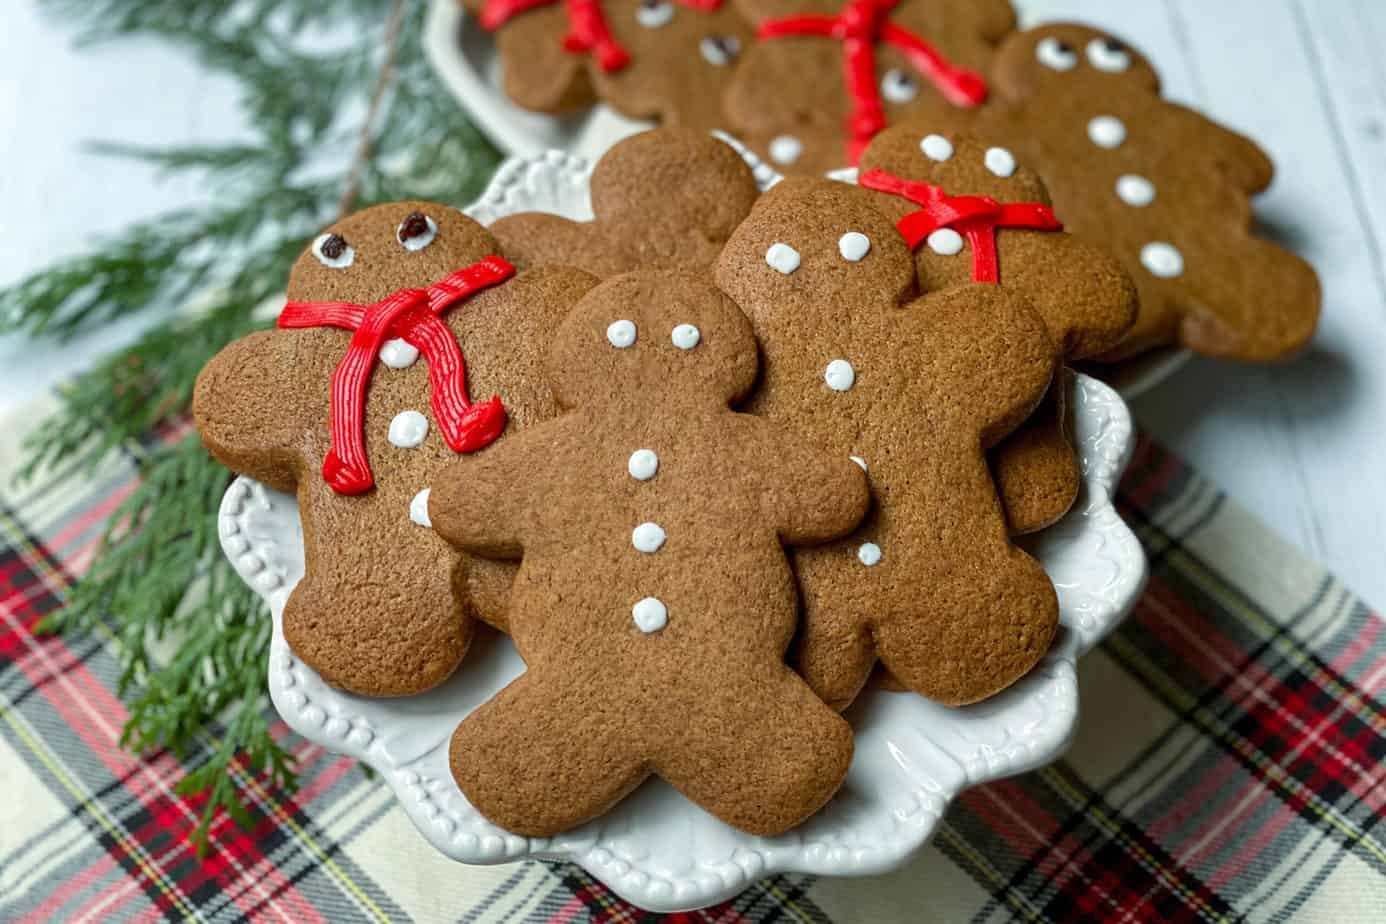 Decorated Gingerbread Cookies on a White Stand